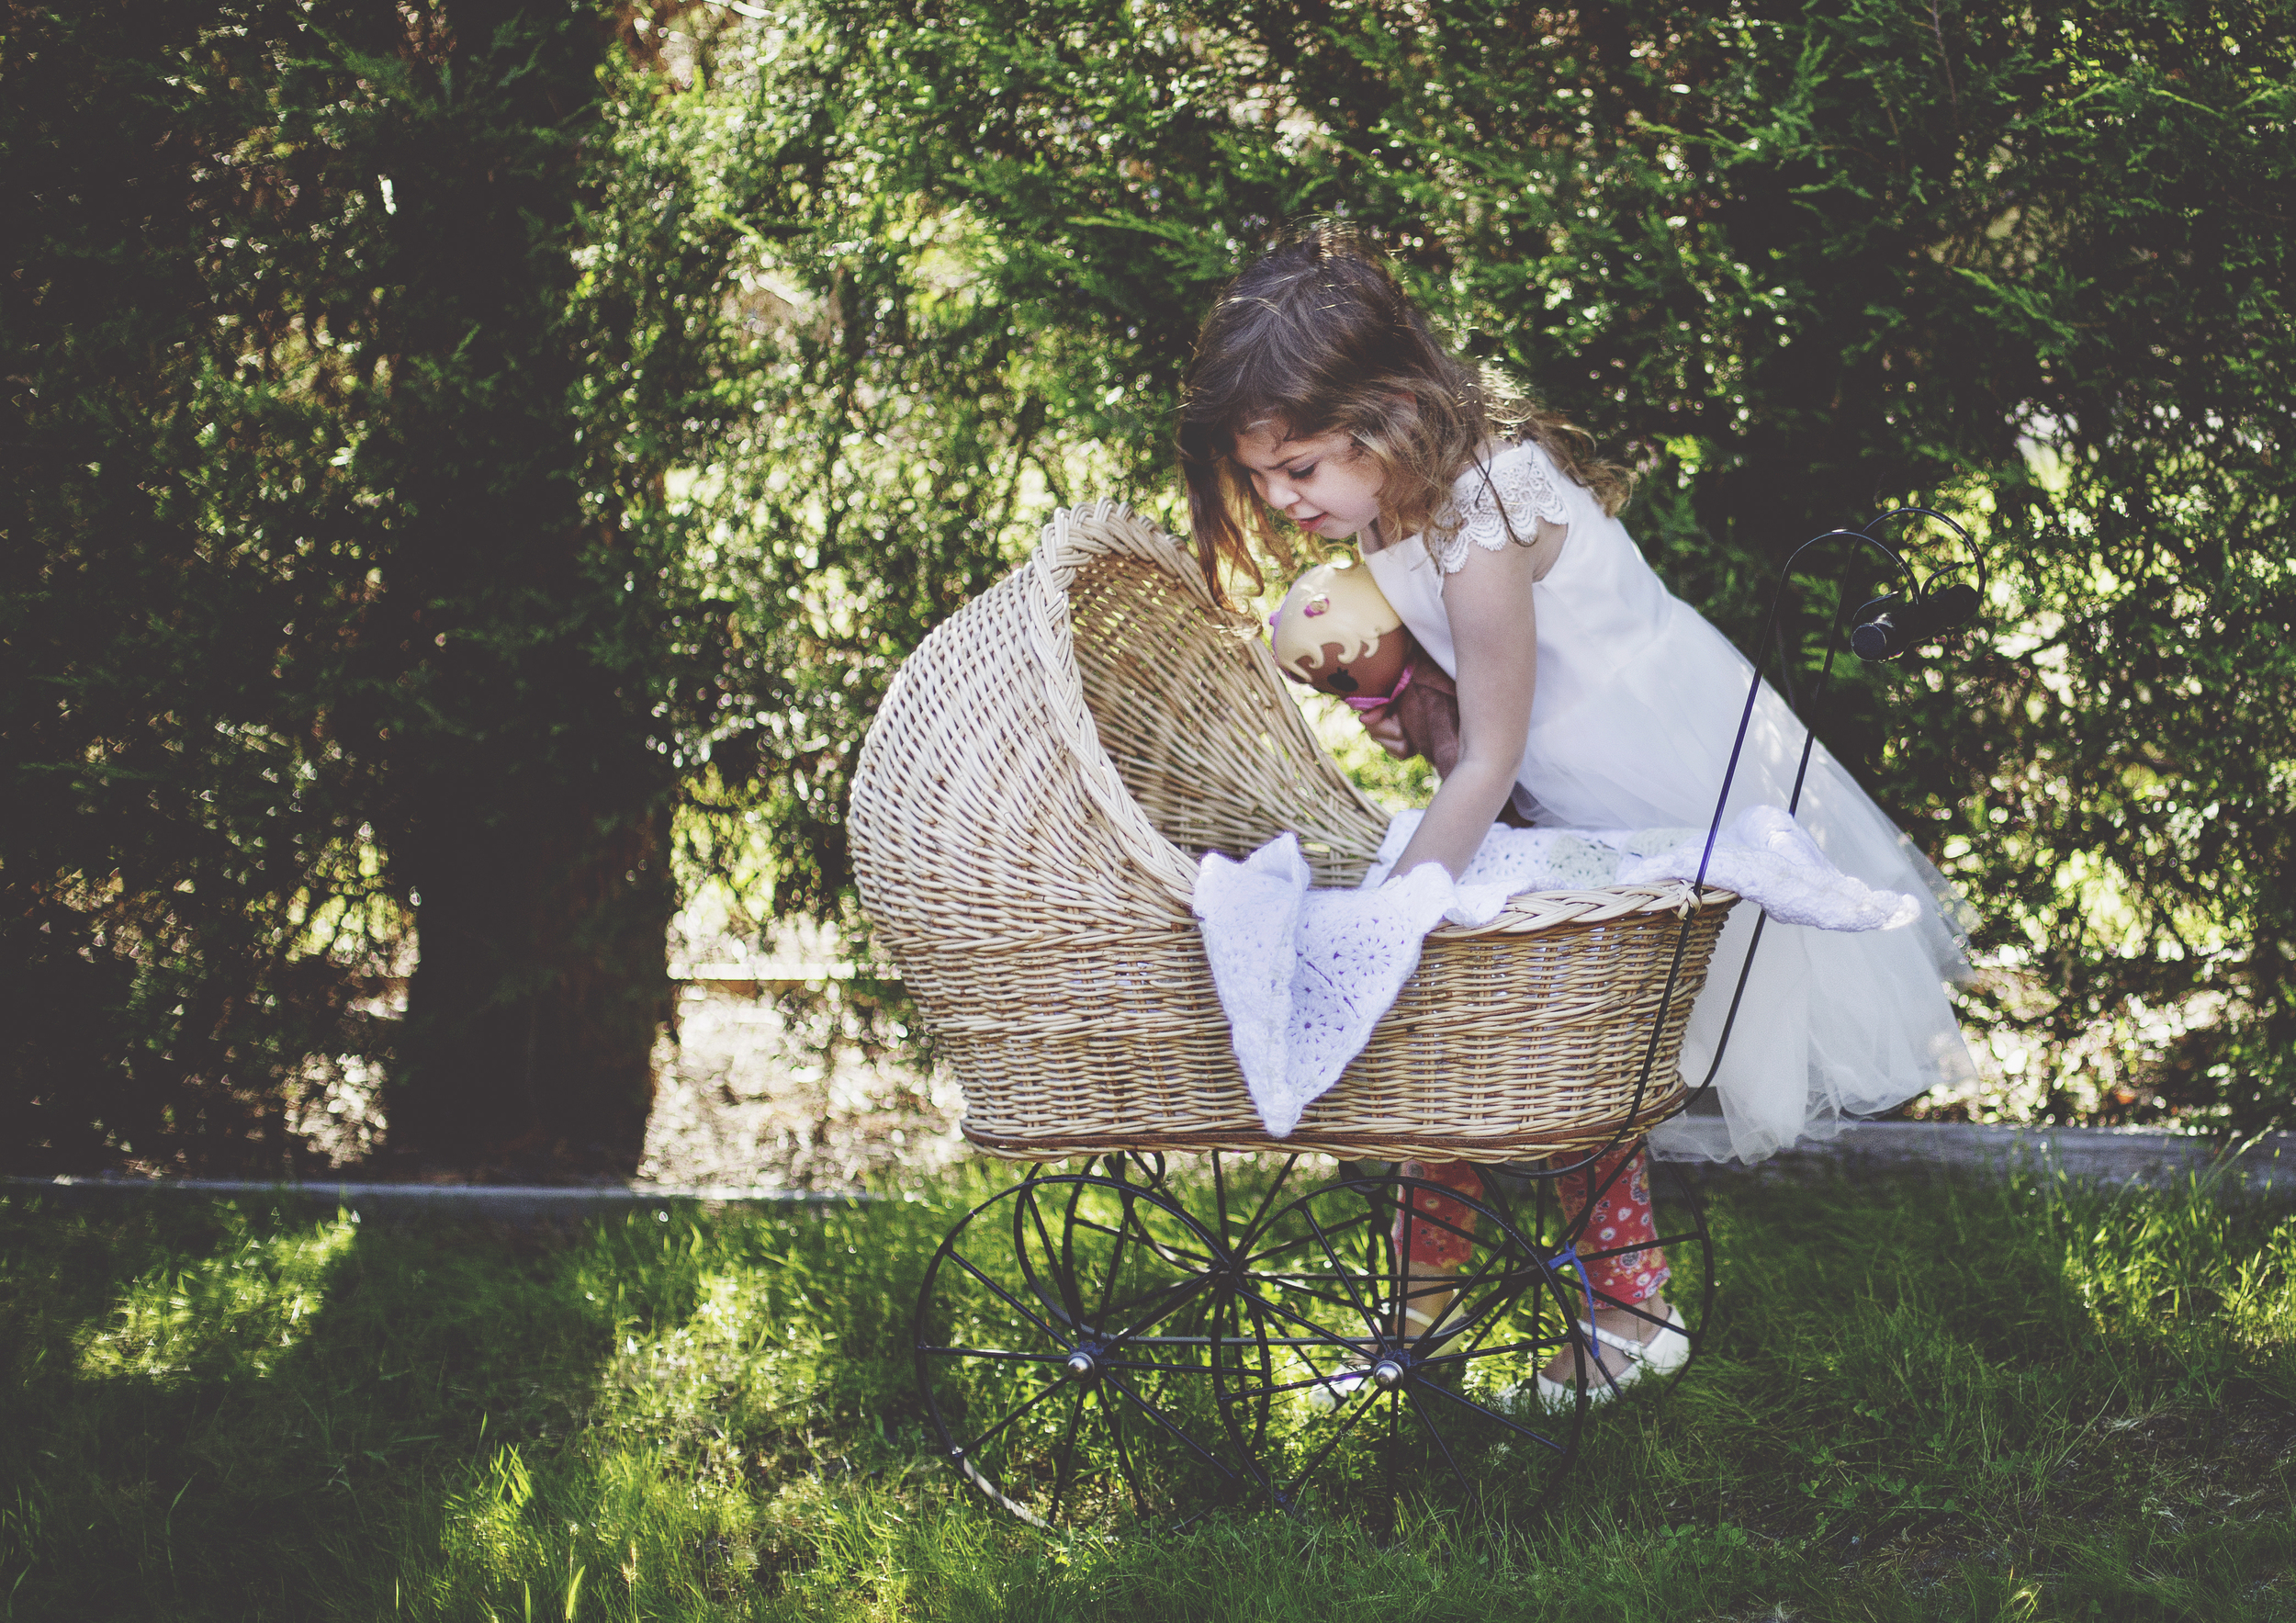 Children & Family Photography Melbourne